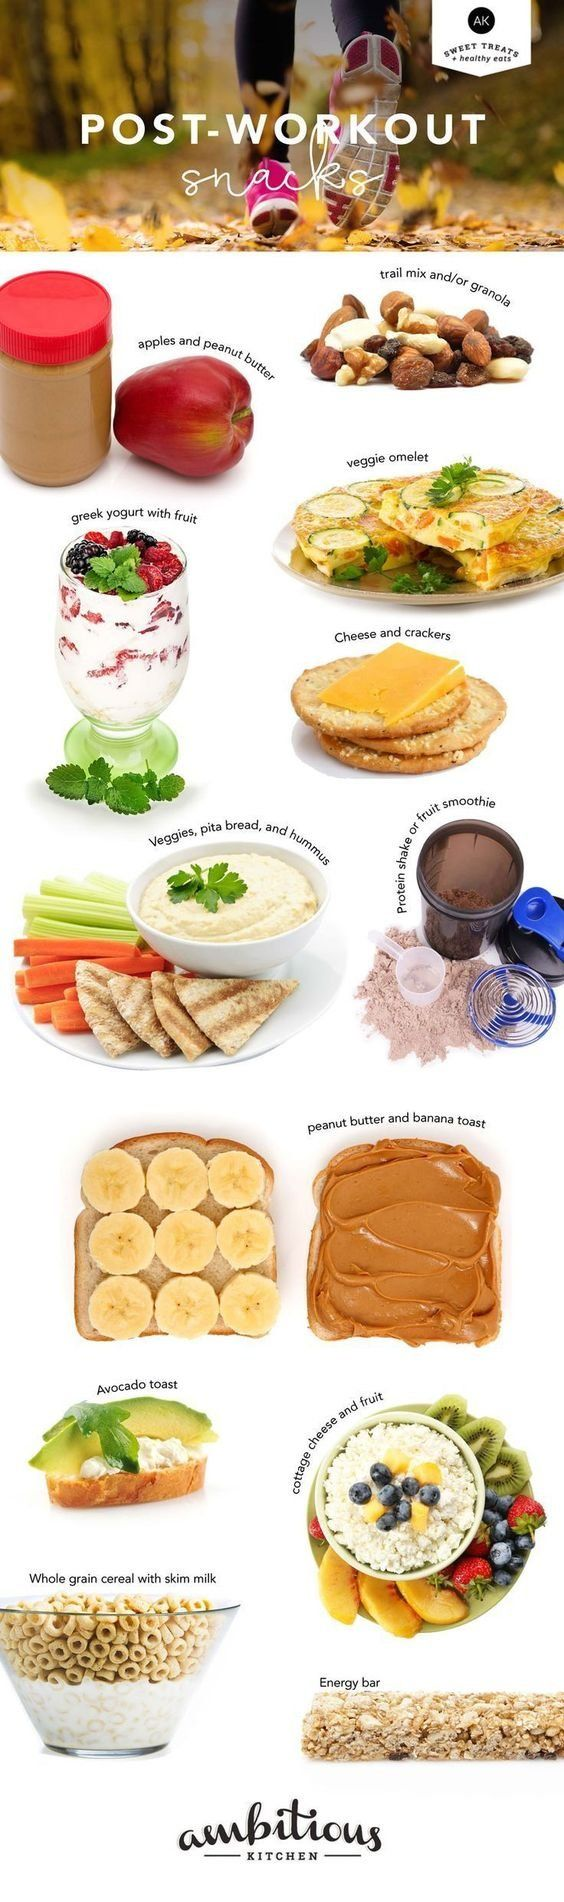 Can i drink only protein shakes to lose weight image 2